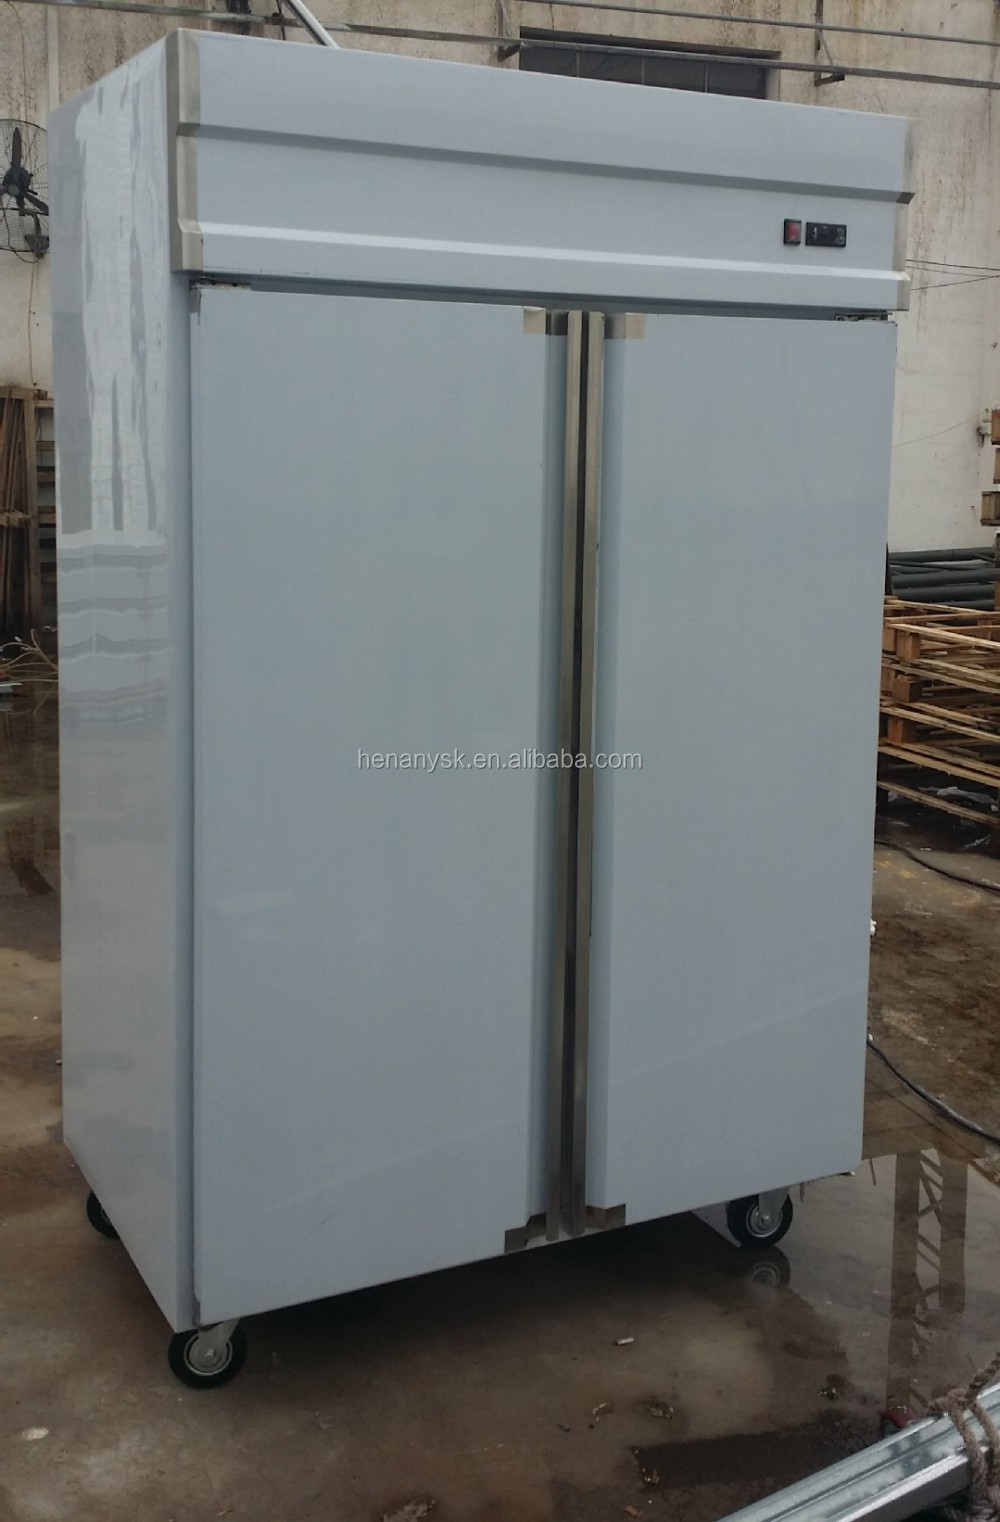 -18~-22 Degree Freezer 3 Big Doors Commercial Vertical Cooler 3 Doors for Kitchen - 23 Cu. Ft.